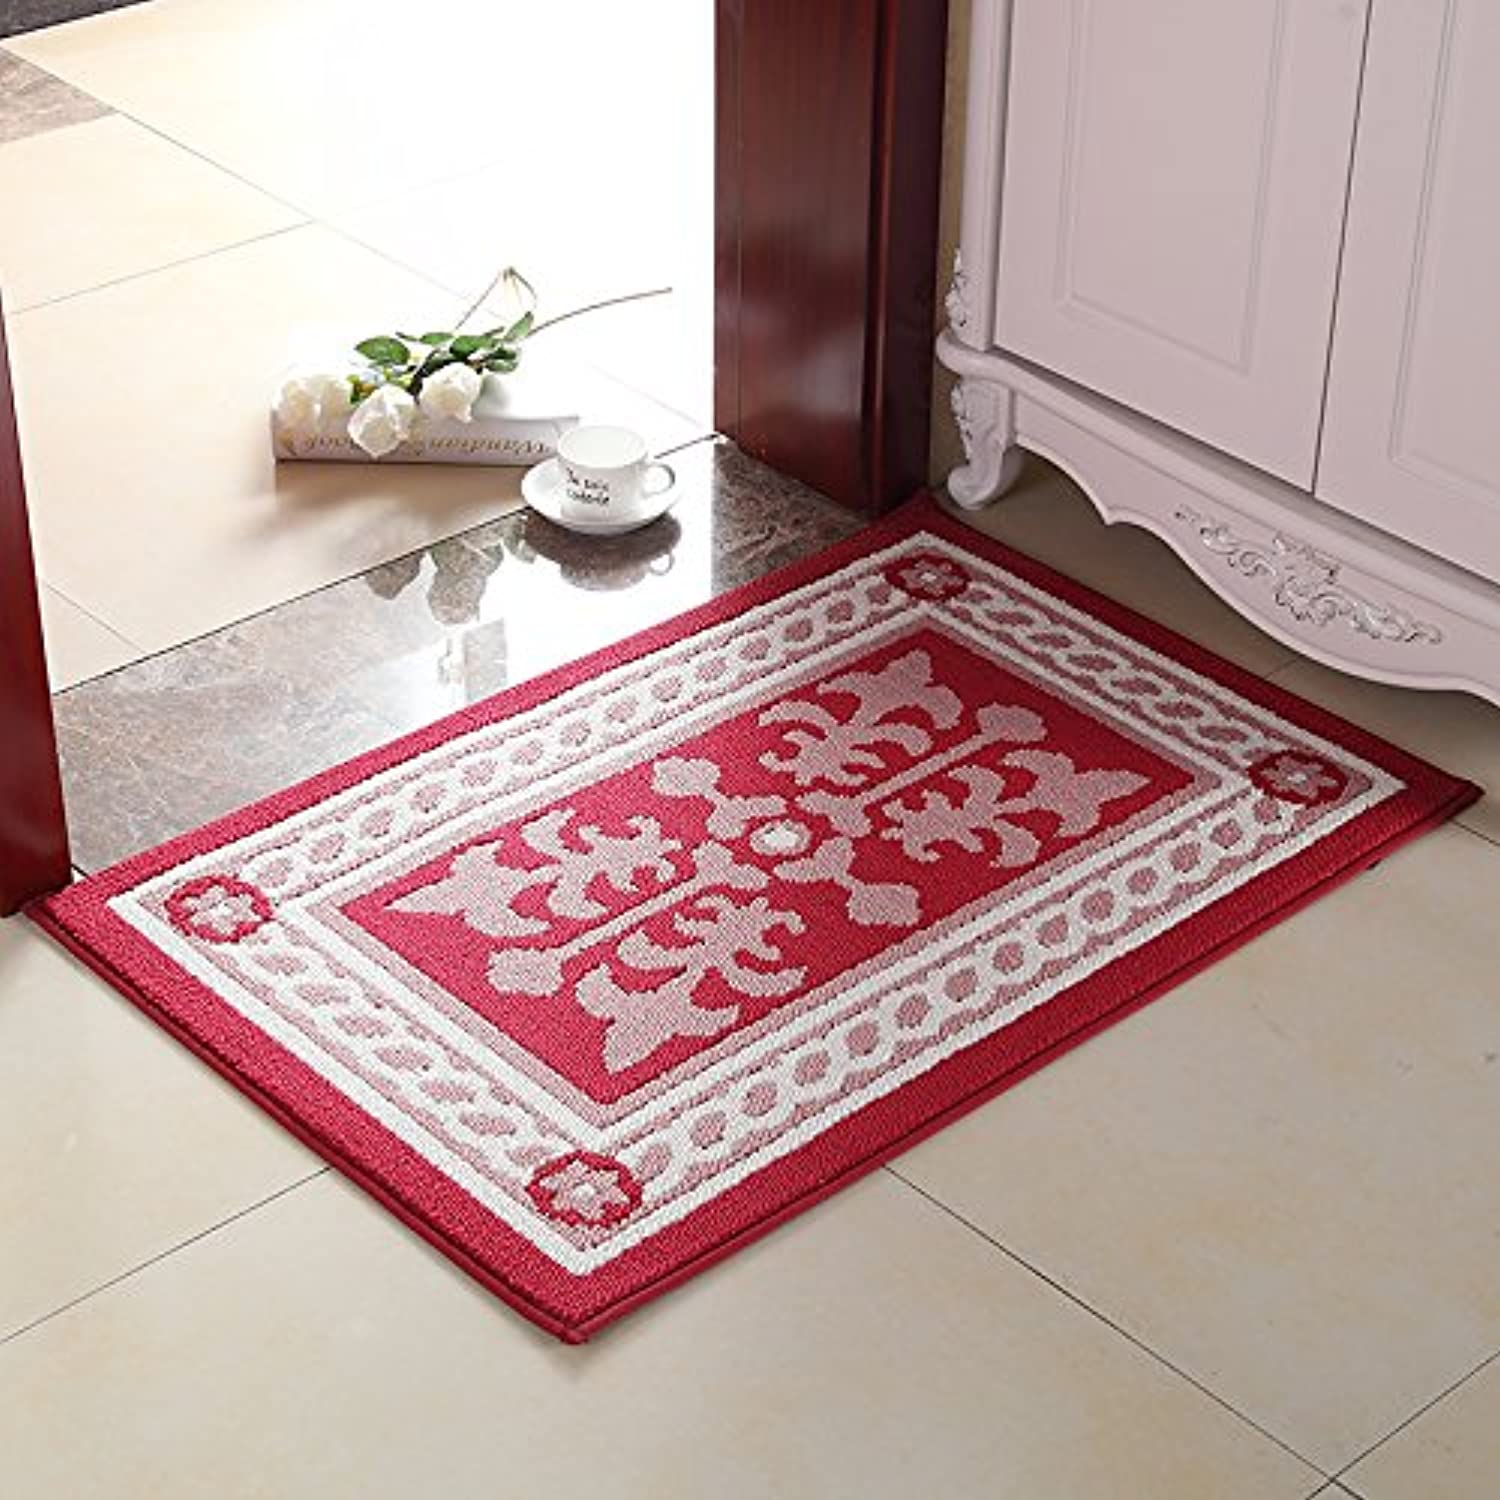 JinYiDian'Shop-Continental Mats Door Mat The Carpet Of The Bedrooms Kitchen Suction Feet ,6090Cm,7554